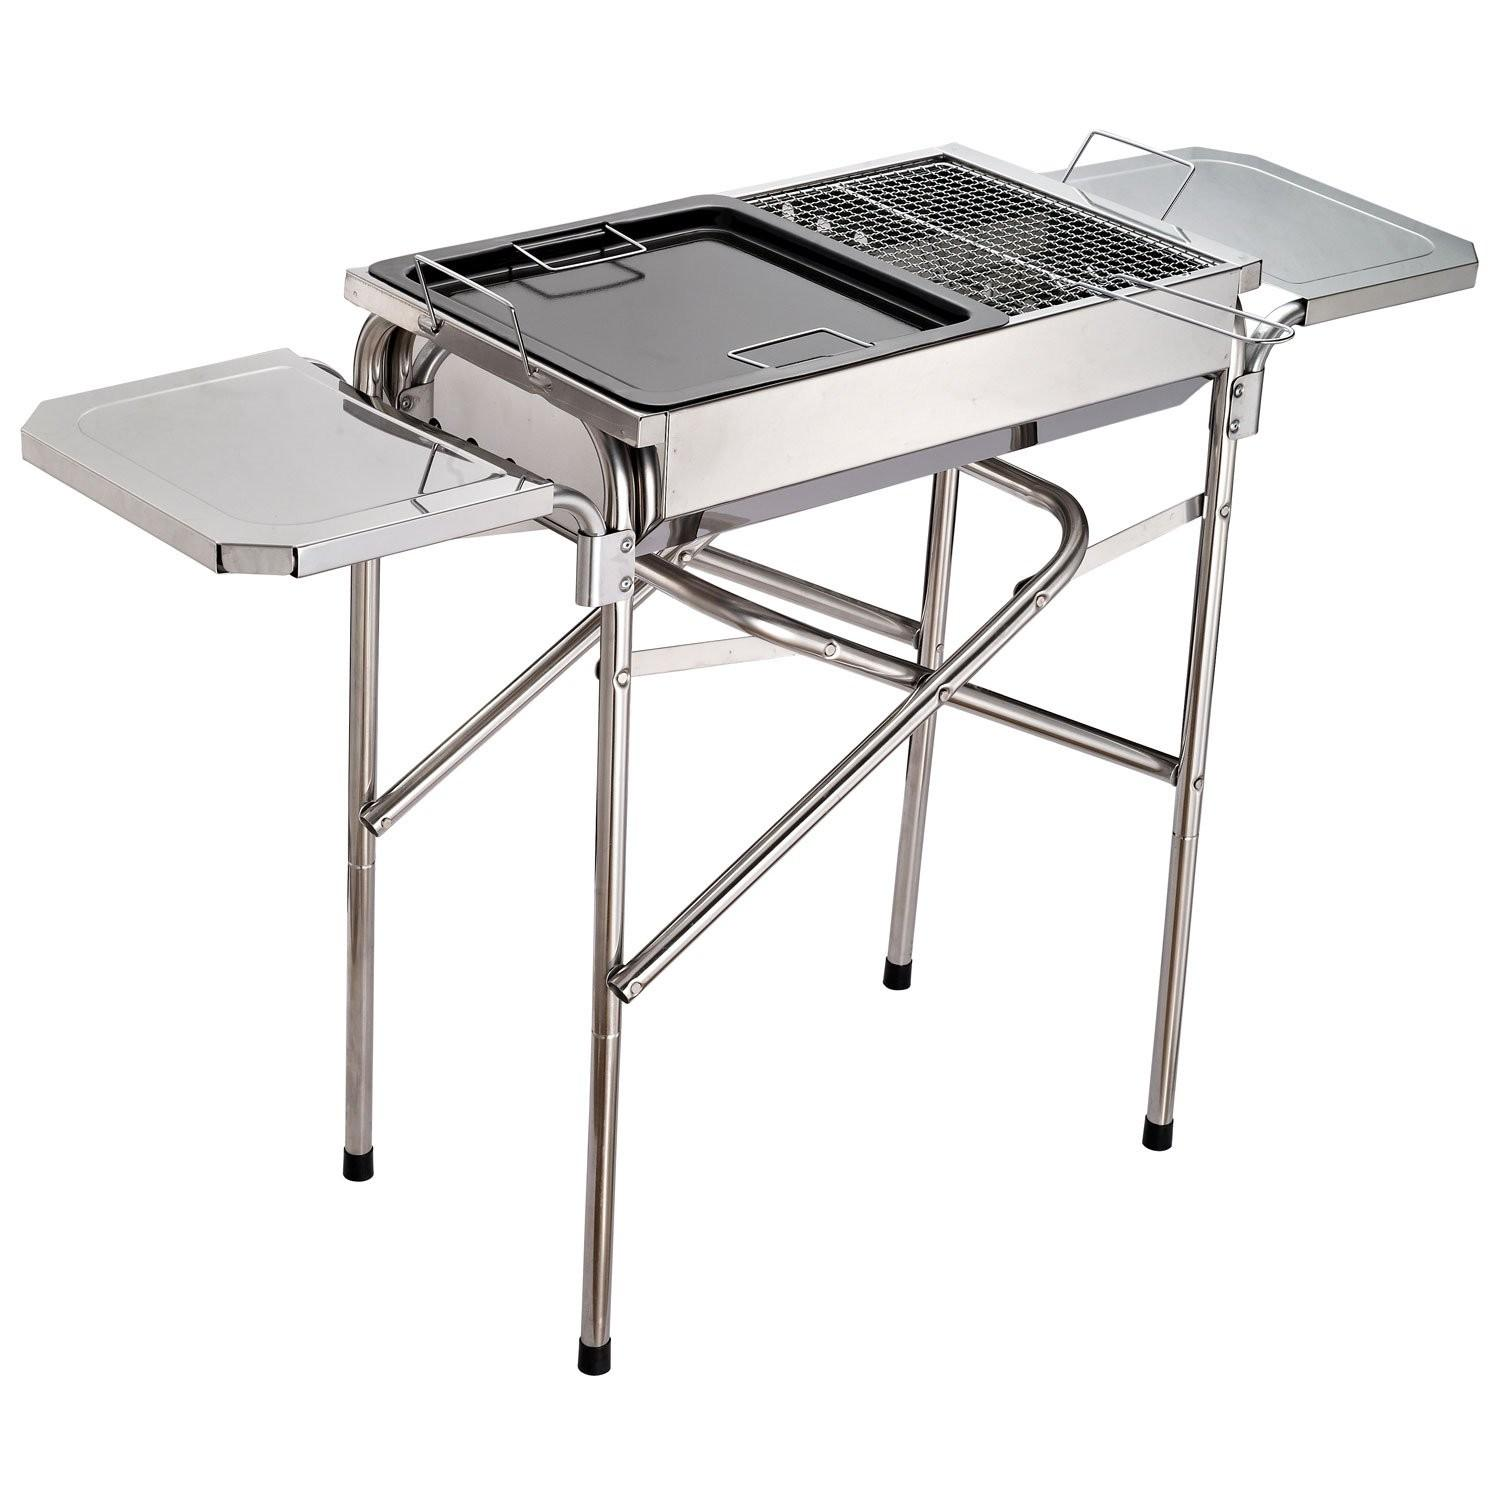 Barbecue a carbone carbonella bbq grill con piano d for Giordano shop barbecue a gas